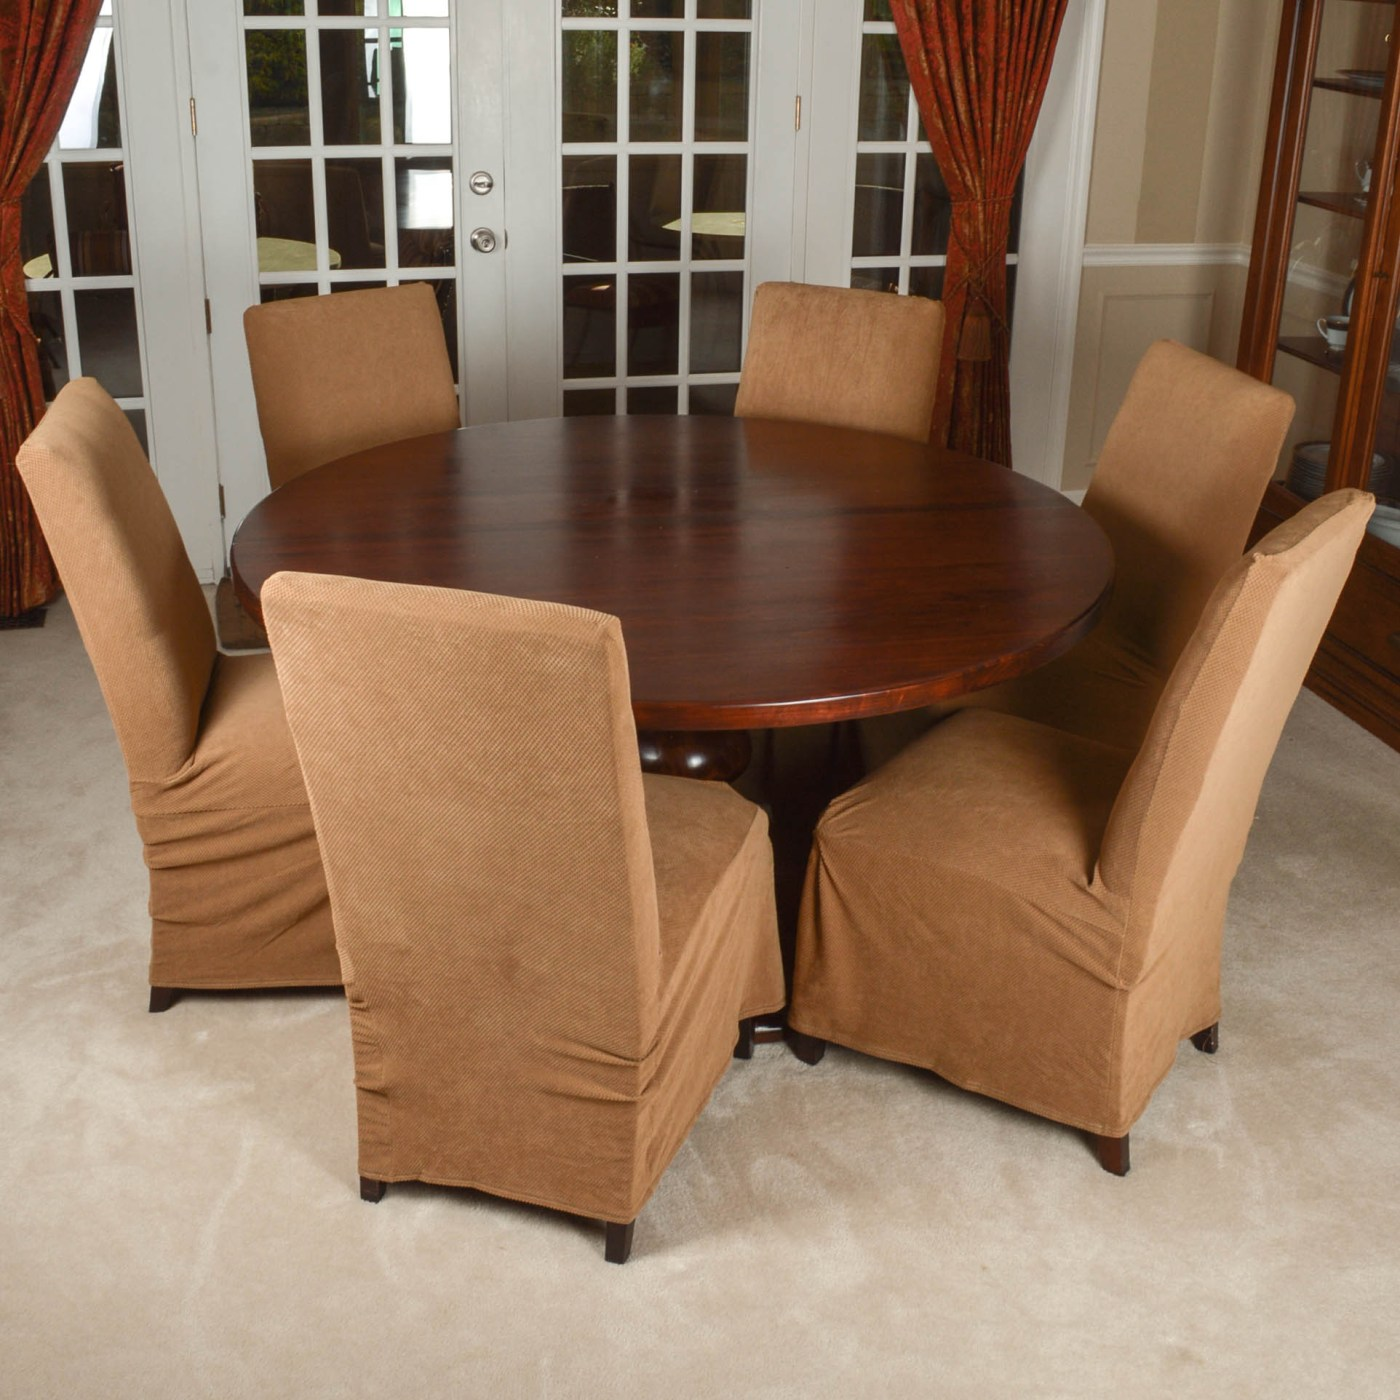 Arhaus Dining Chairs Arhaus Furniture Quottuscany Quot Dining Table And Six Parsons